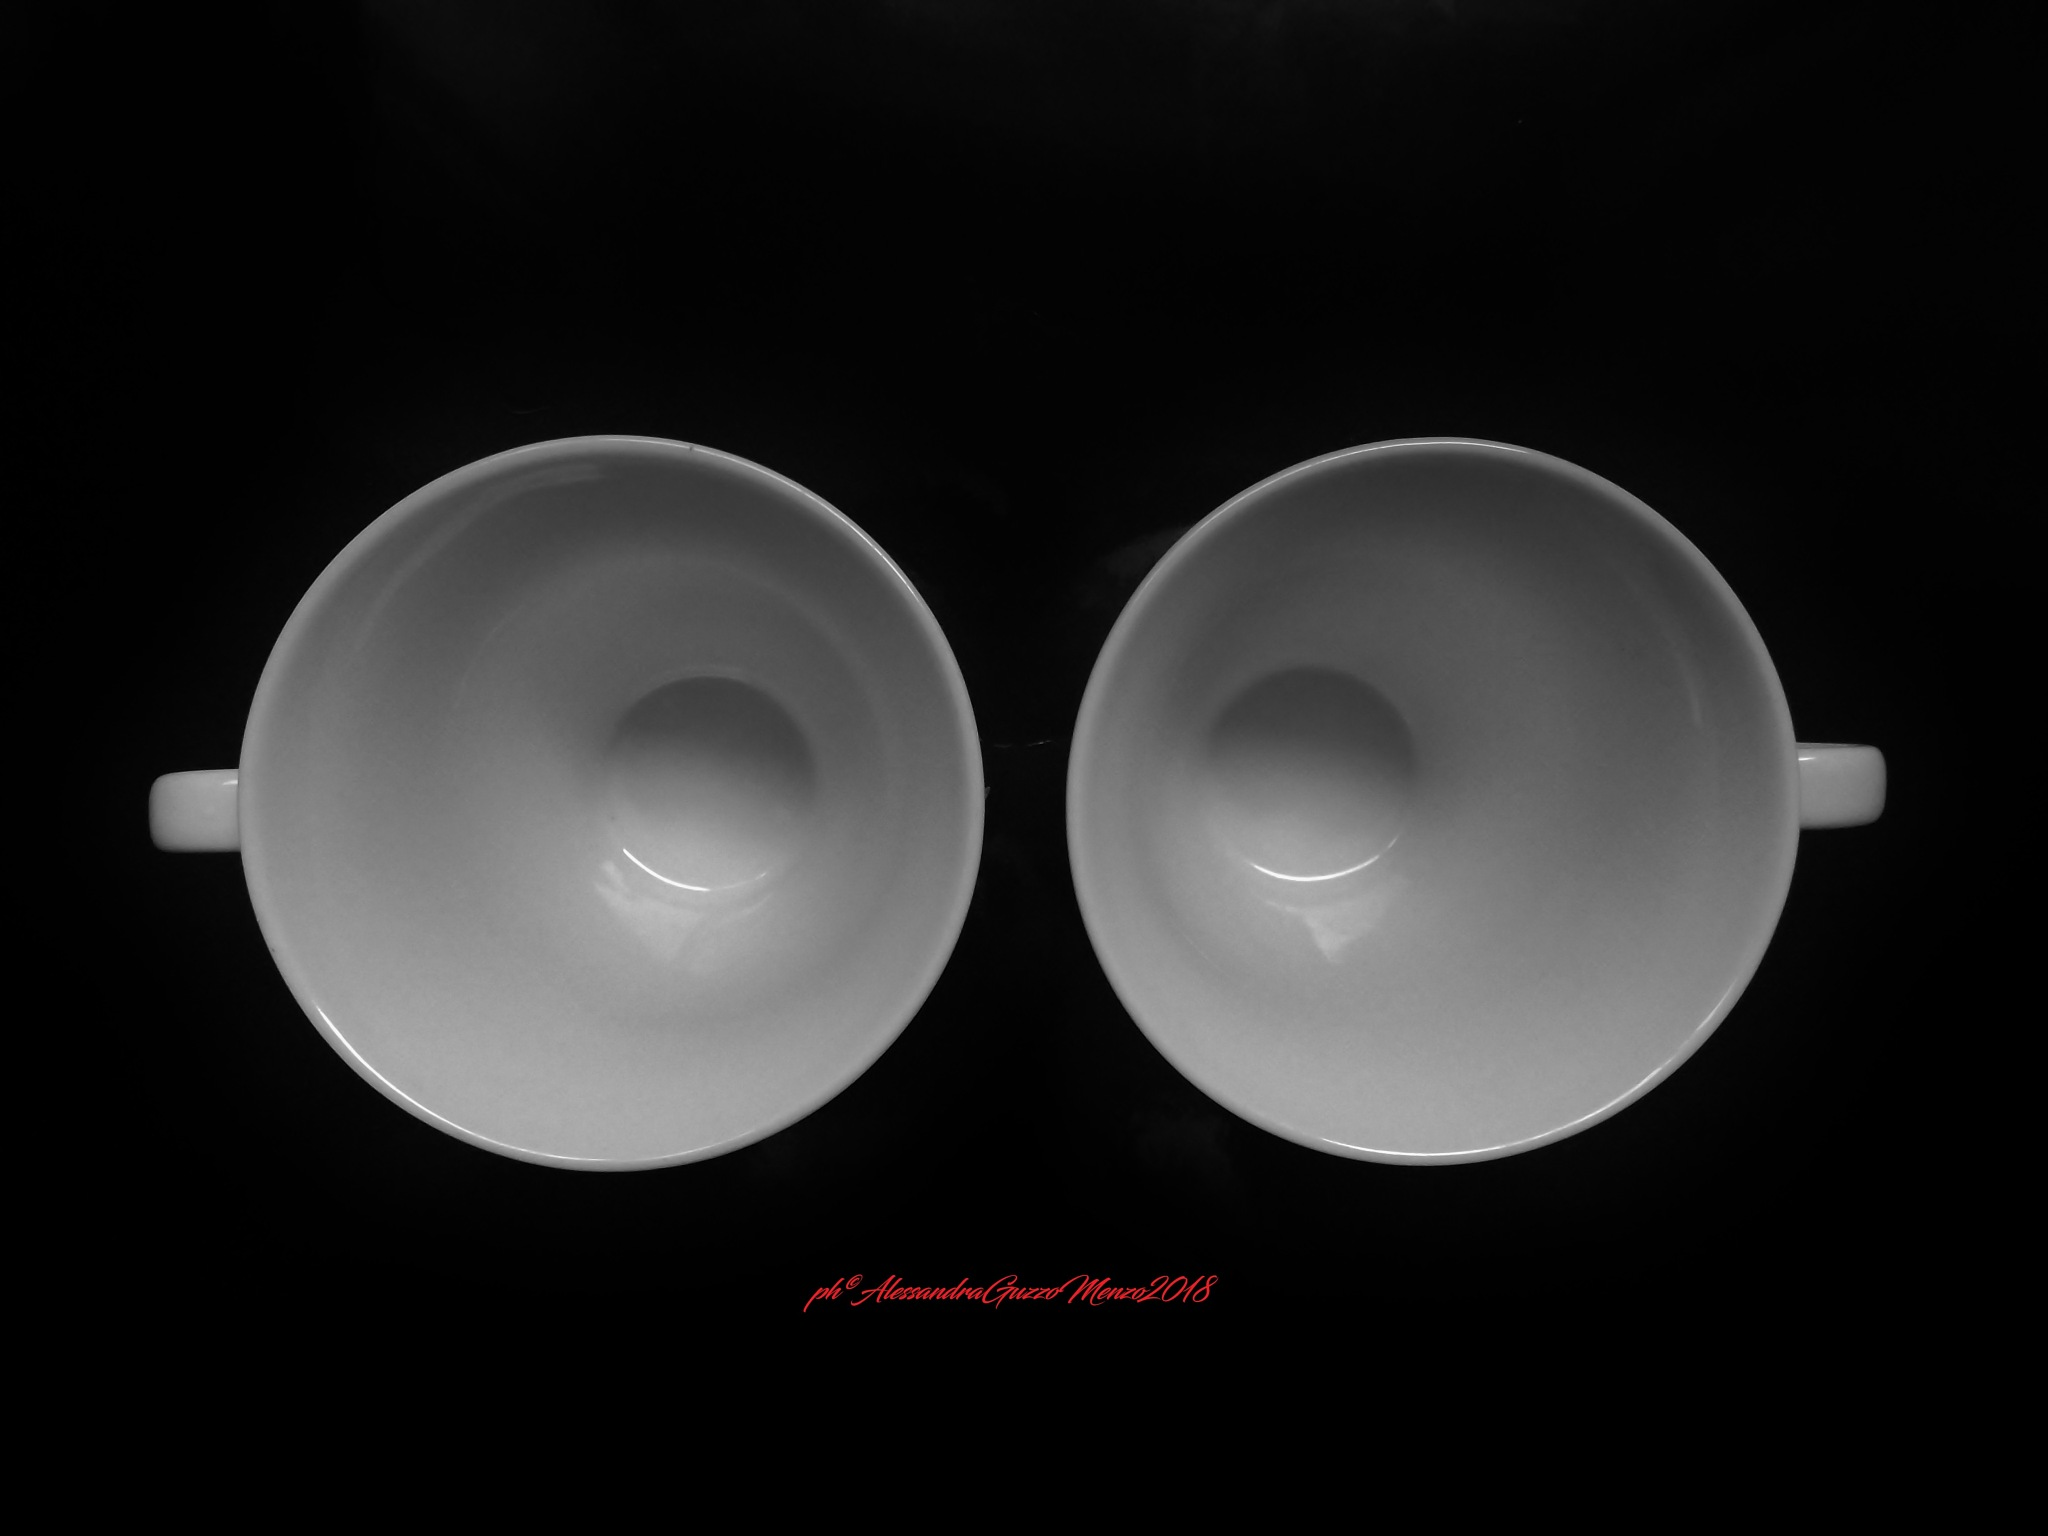 two cups by Alessandra Guzzo Menzo